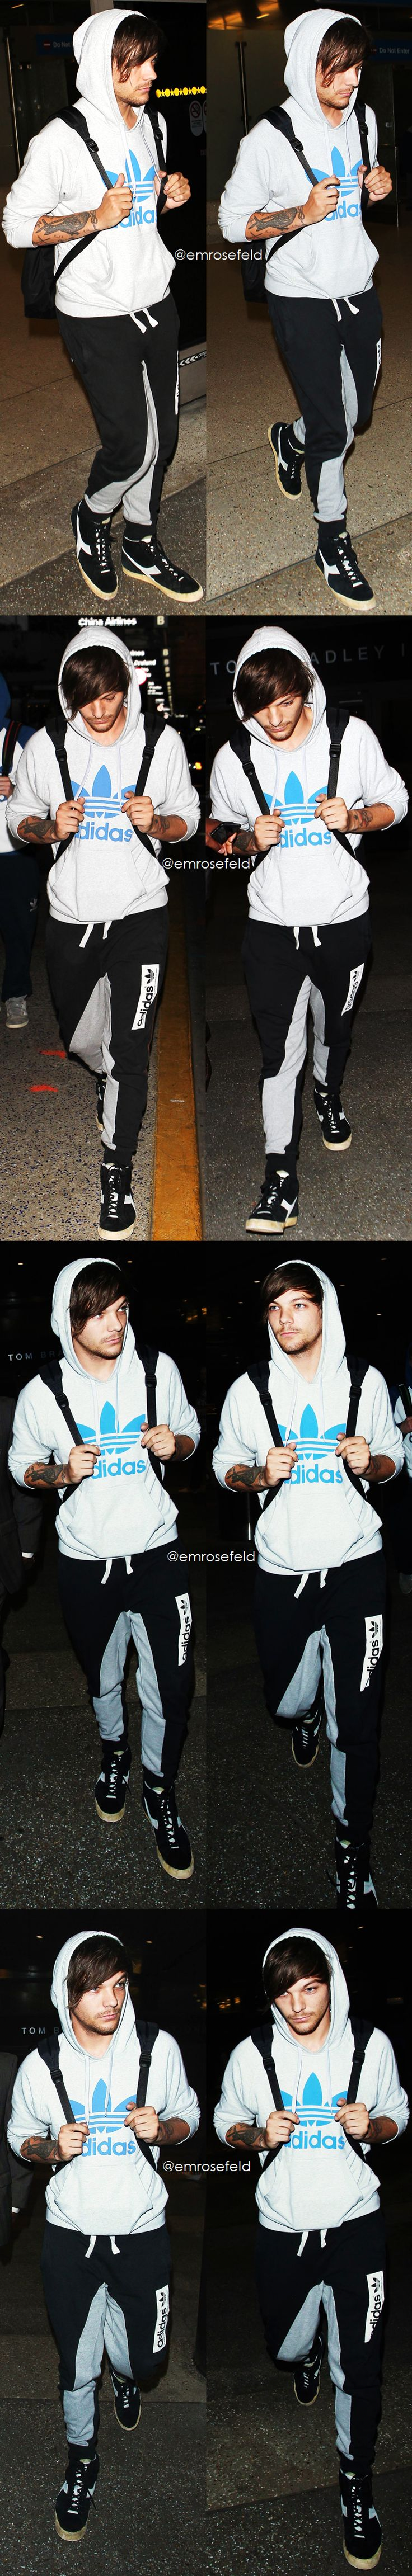 And here we have the always beautiful Louis Tomlinson from One Direction exemplifying great athletic mens wear: from adidas hoodie to bold joggers to fresh kicks.